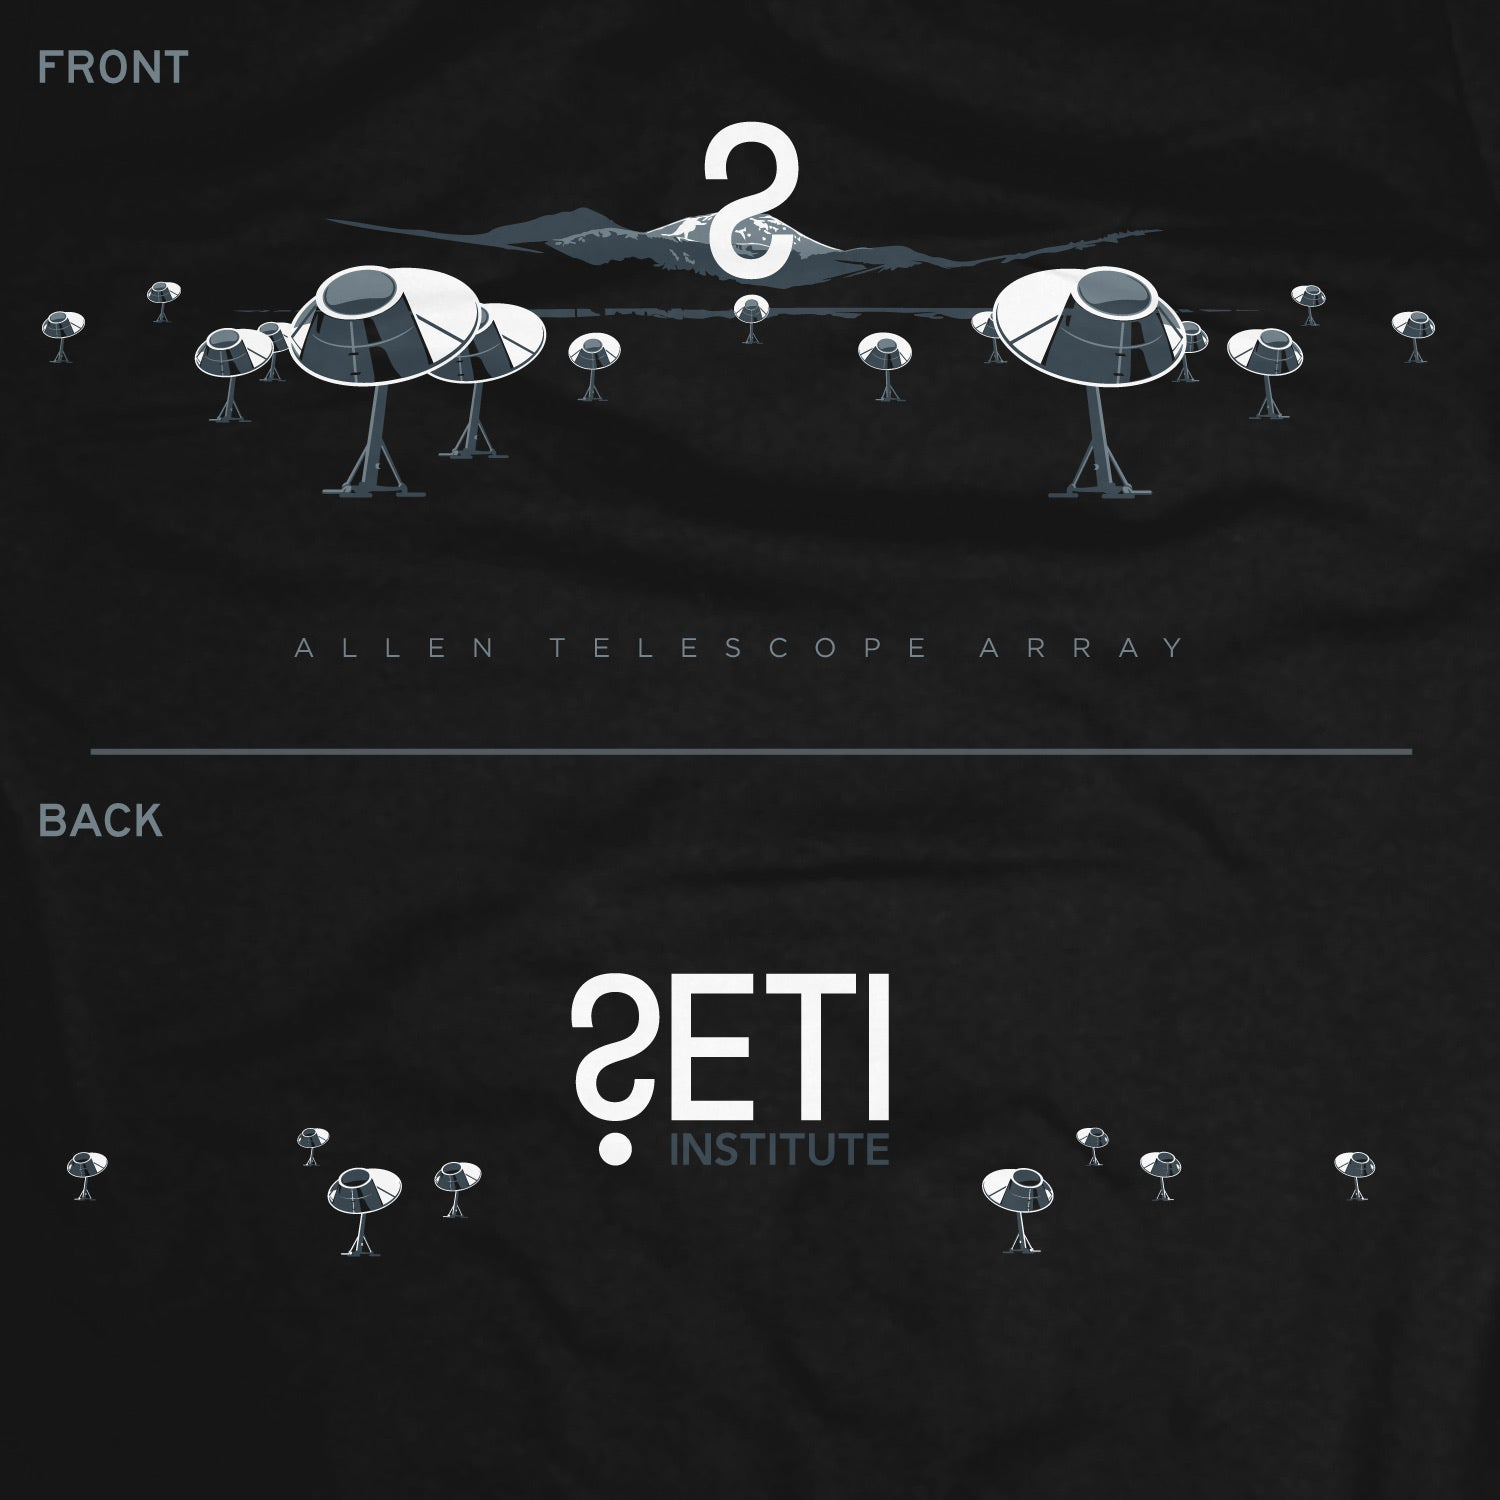 The Allen Array Telescope T-Shirt for SETI